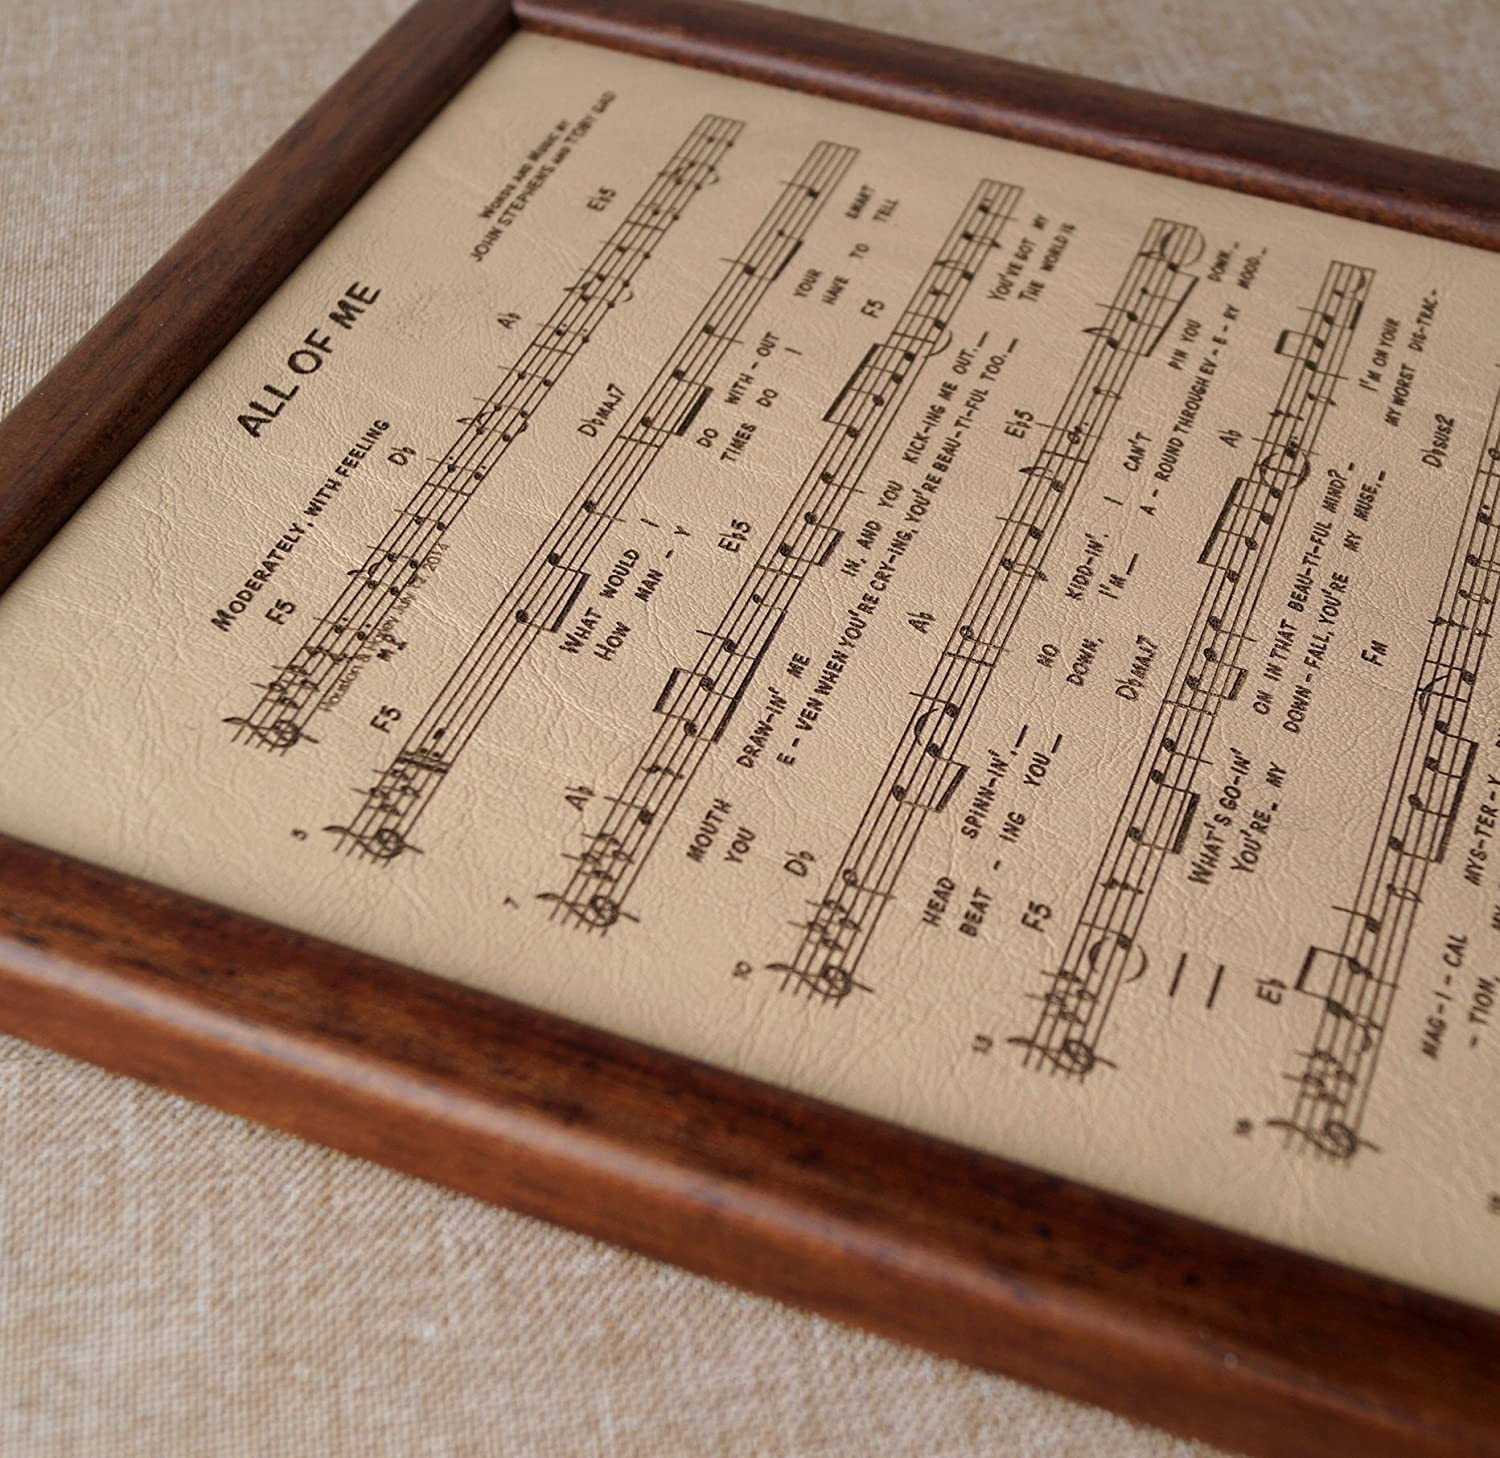 3rd Wedding Anniversary Gift.3rd Wedding Anniversary Gift Leather Engraving Music Notes Sheet Engraved On Real Leather Leather Picture Custom Engraving